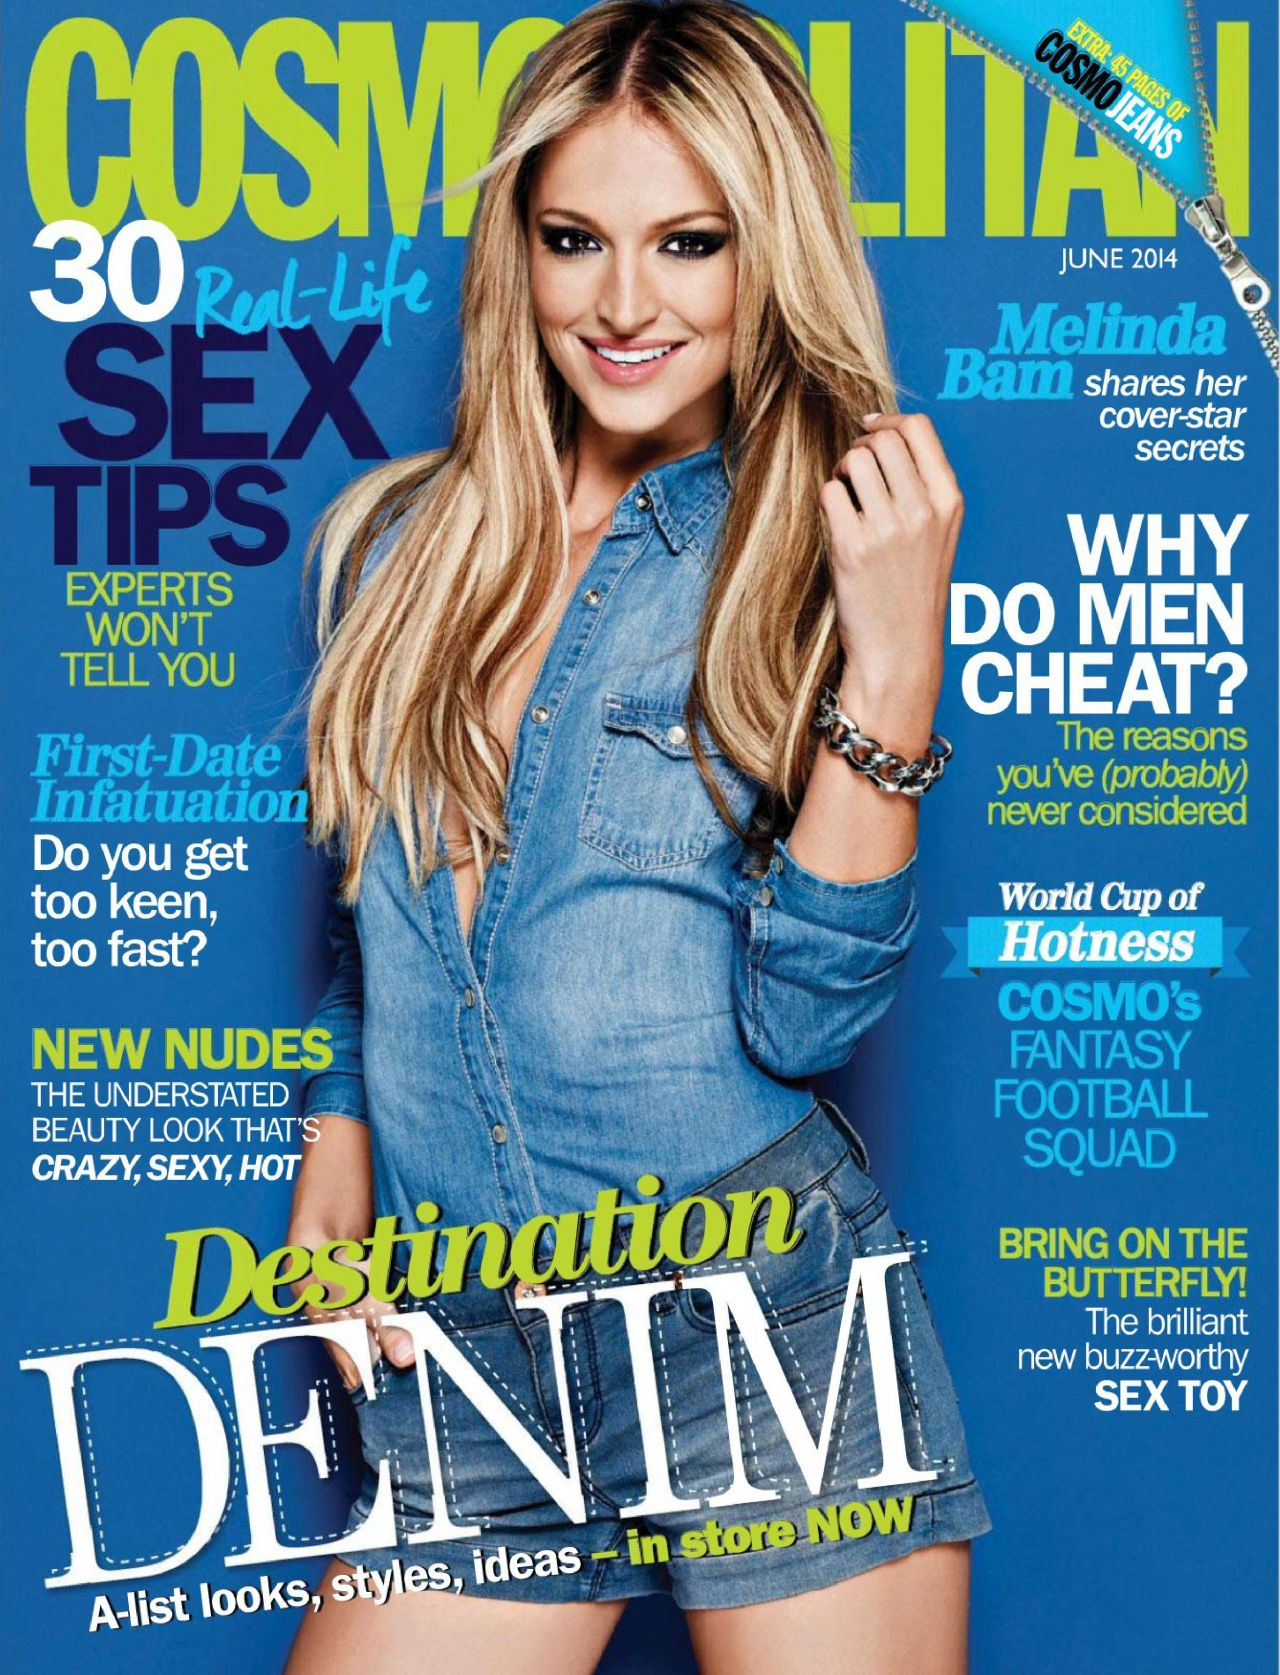 Melinda Bam – Cosmopolitan Magazine (South Africa) June 2014 Issue